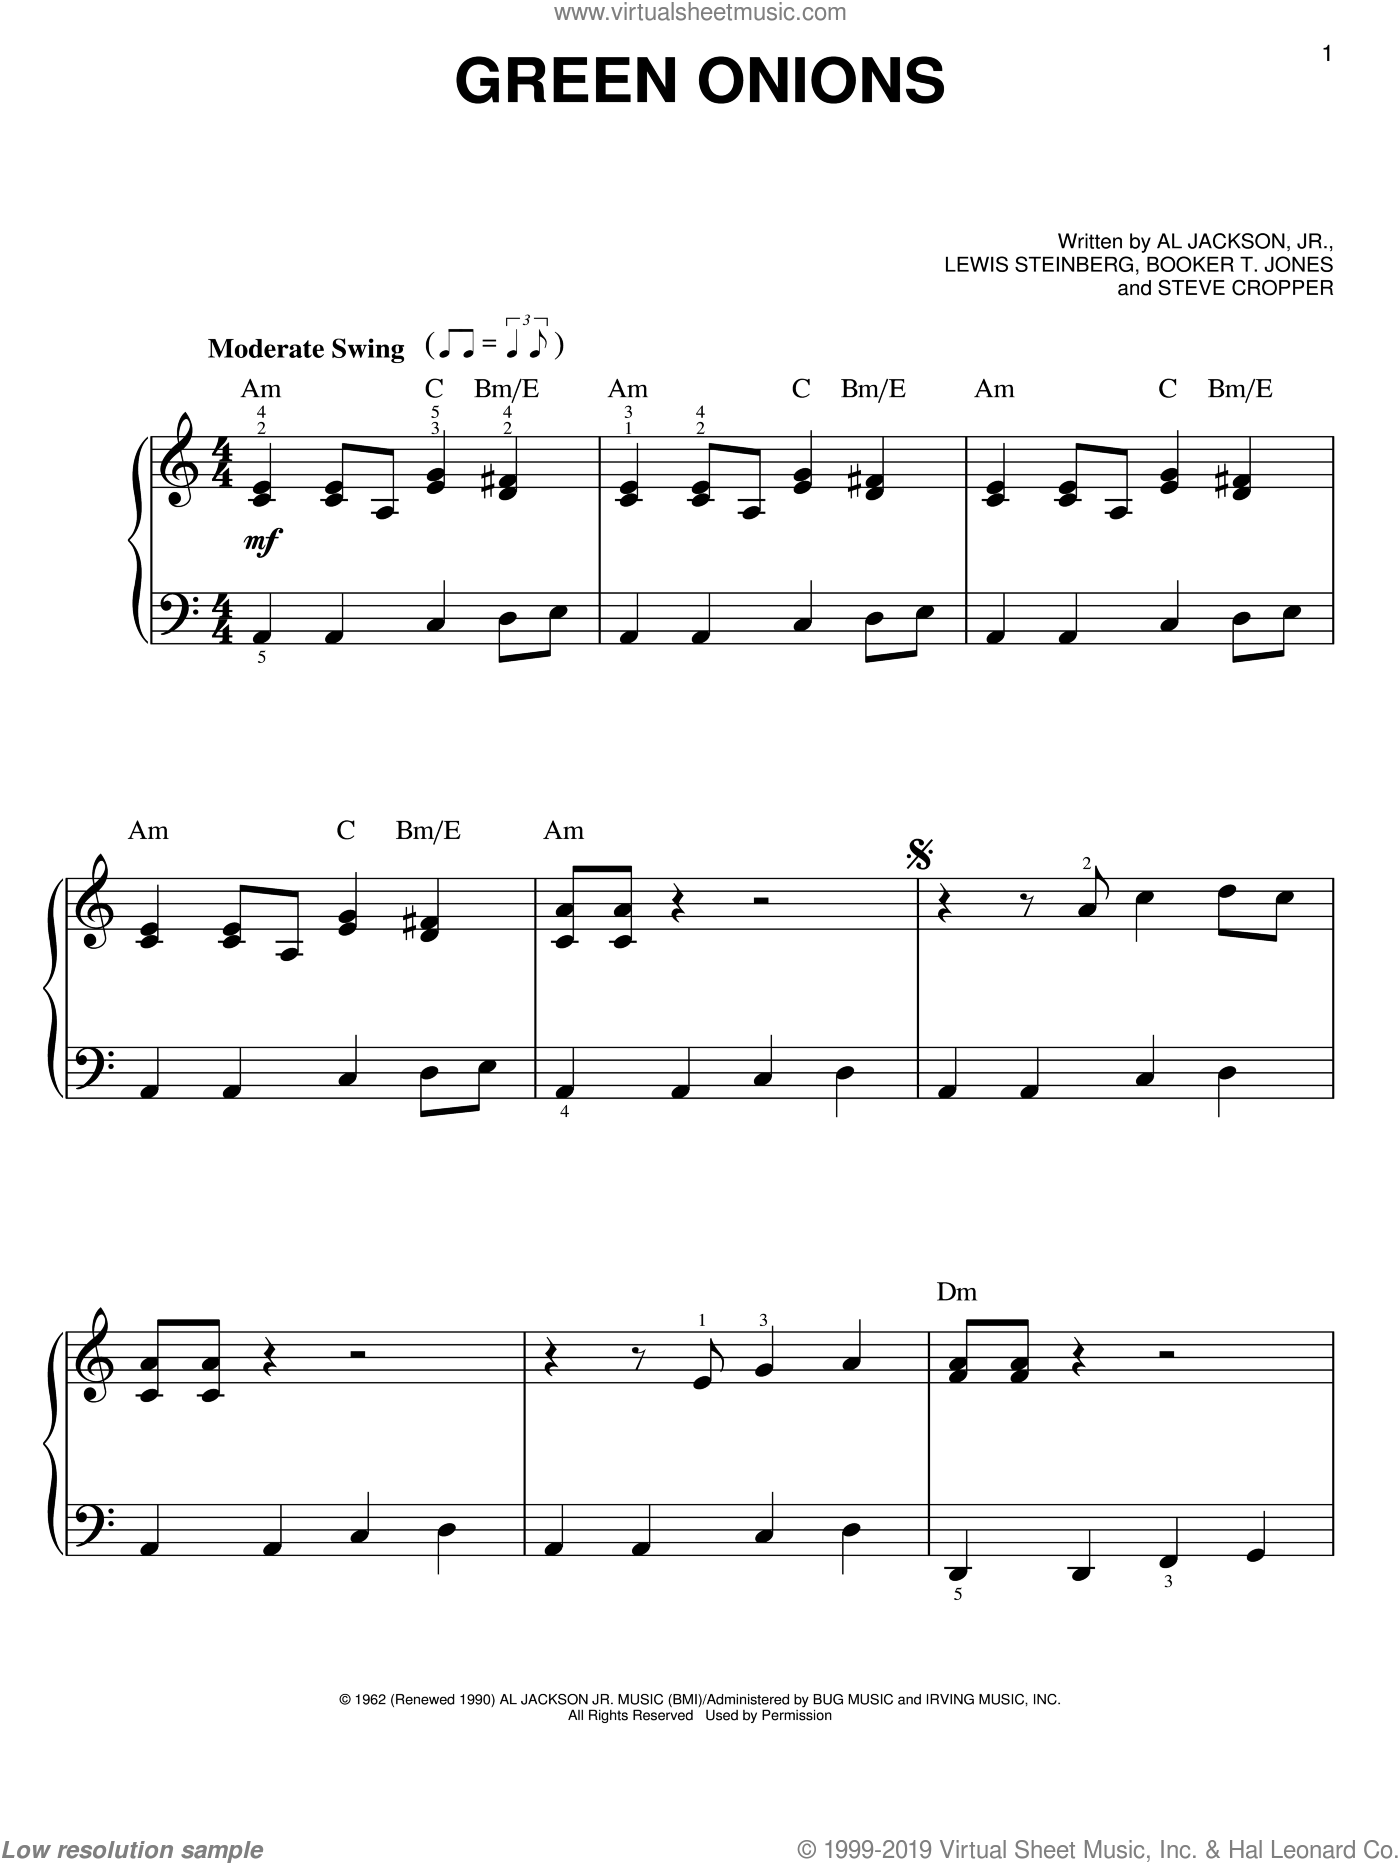 Green Onions sheet music for piano solo by Lewis Steinberg and Booker T. Jones. Score Image Preview.